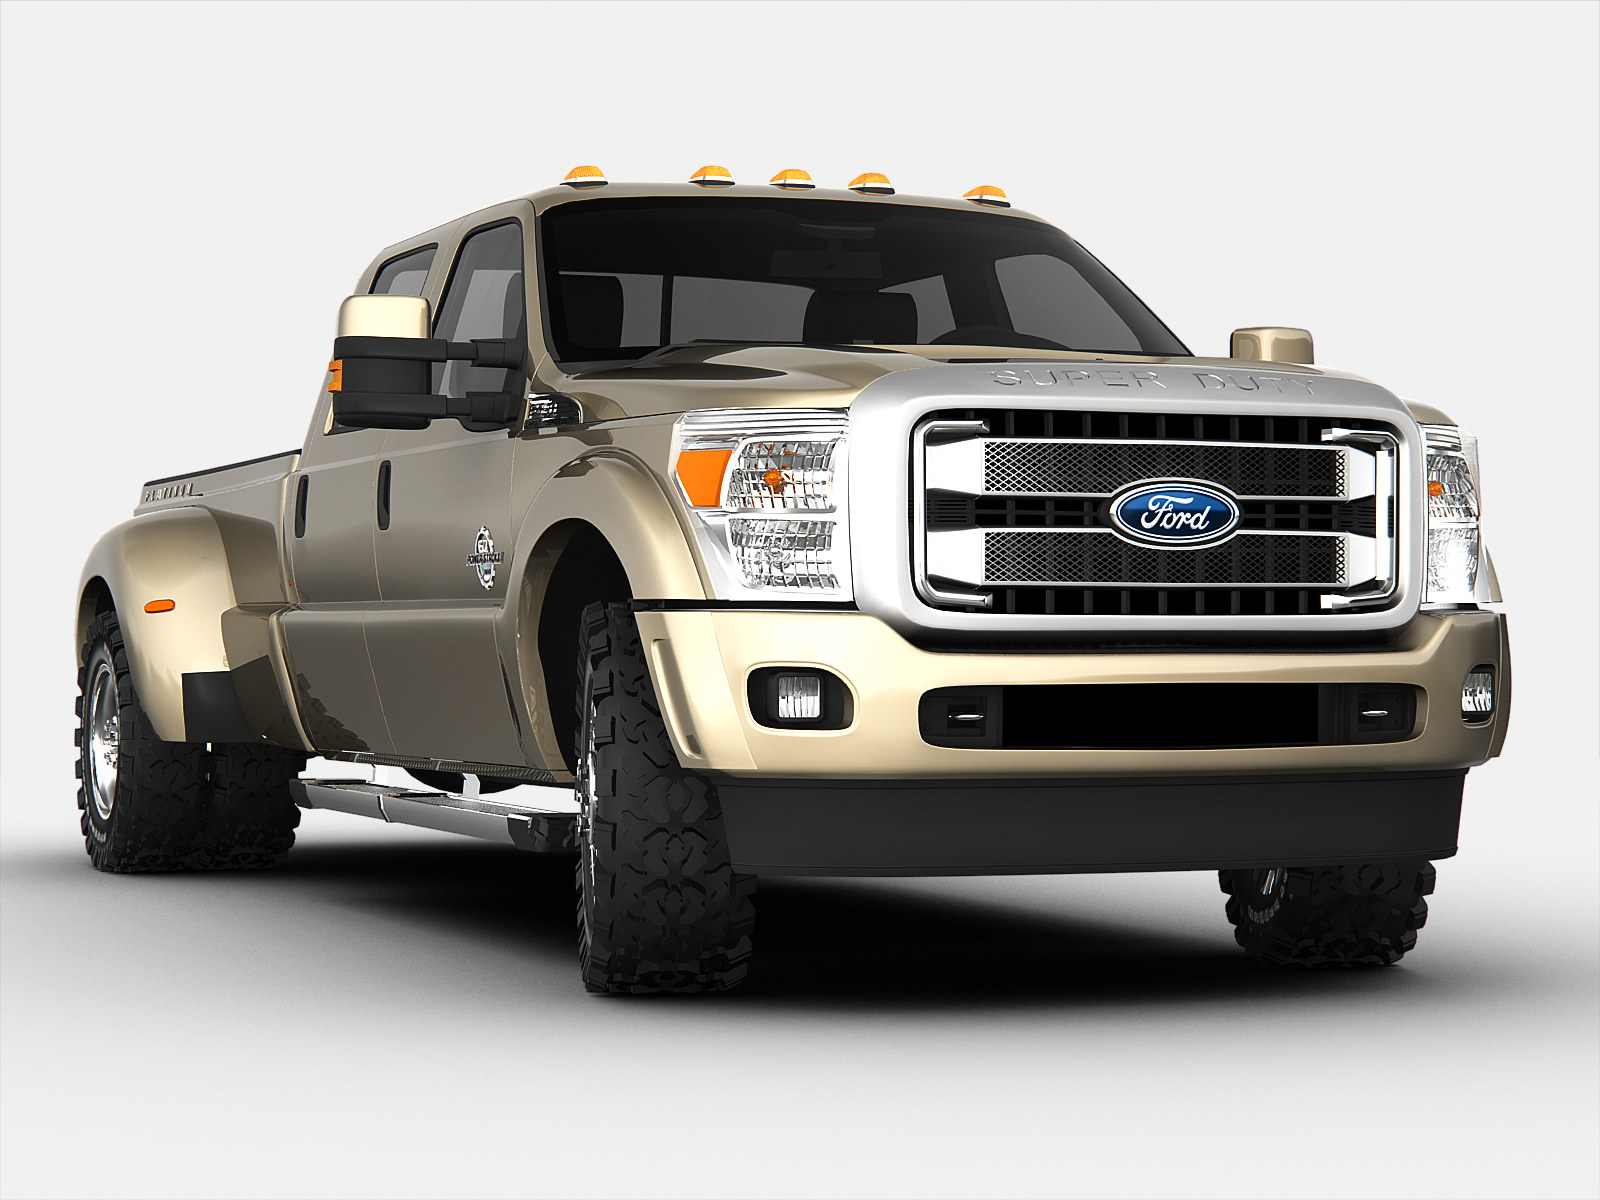 Ford teases new 2013 F-Series Super Duty Model | txGarage |New Model Super Duty